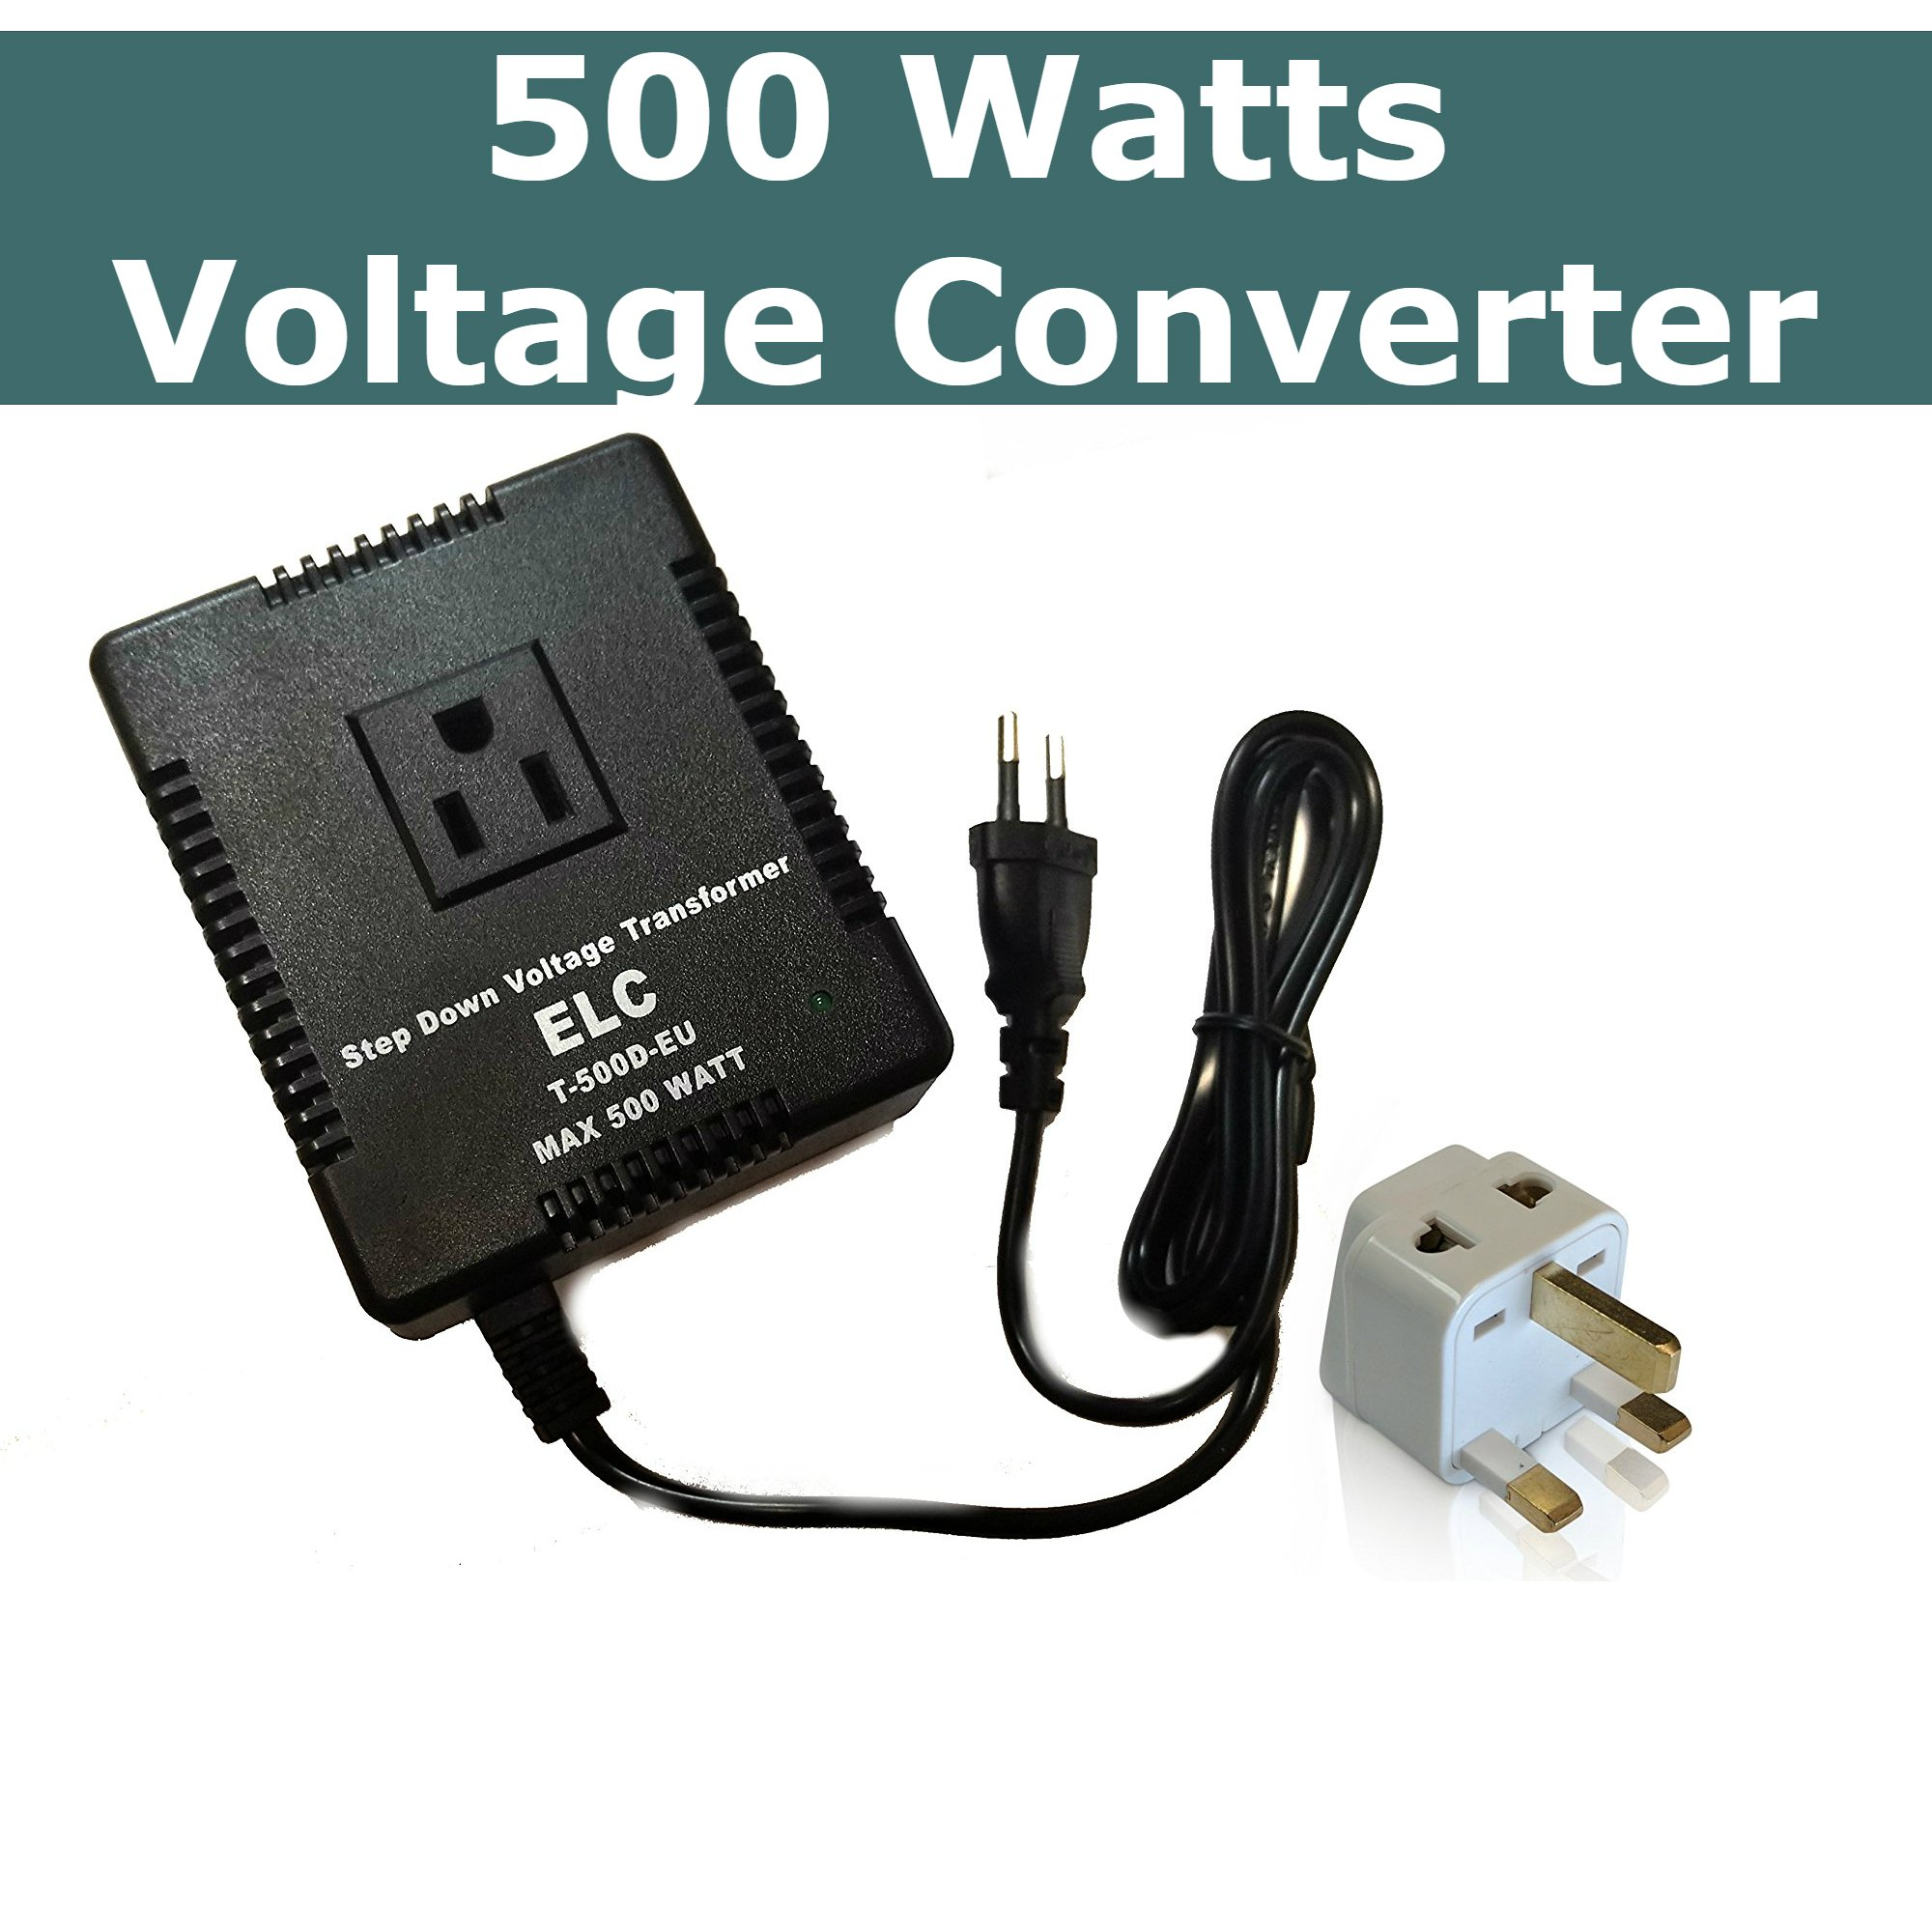 500 Watts Voltage Converter International Travel Step Down for Europe and Asia - 220-240 Volts to 110-120 Volt - Fuse Protection - Ideal for Laptops, Cameras, Phones, iPads Etc